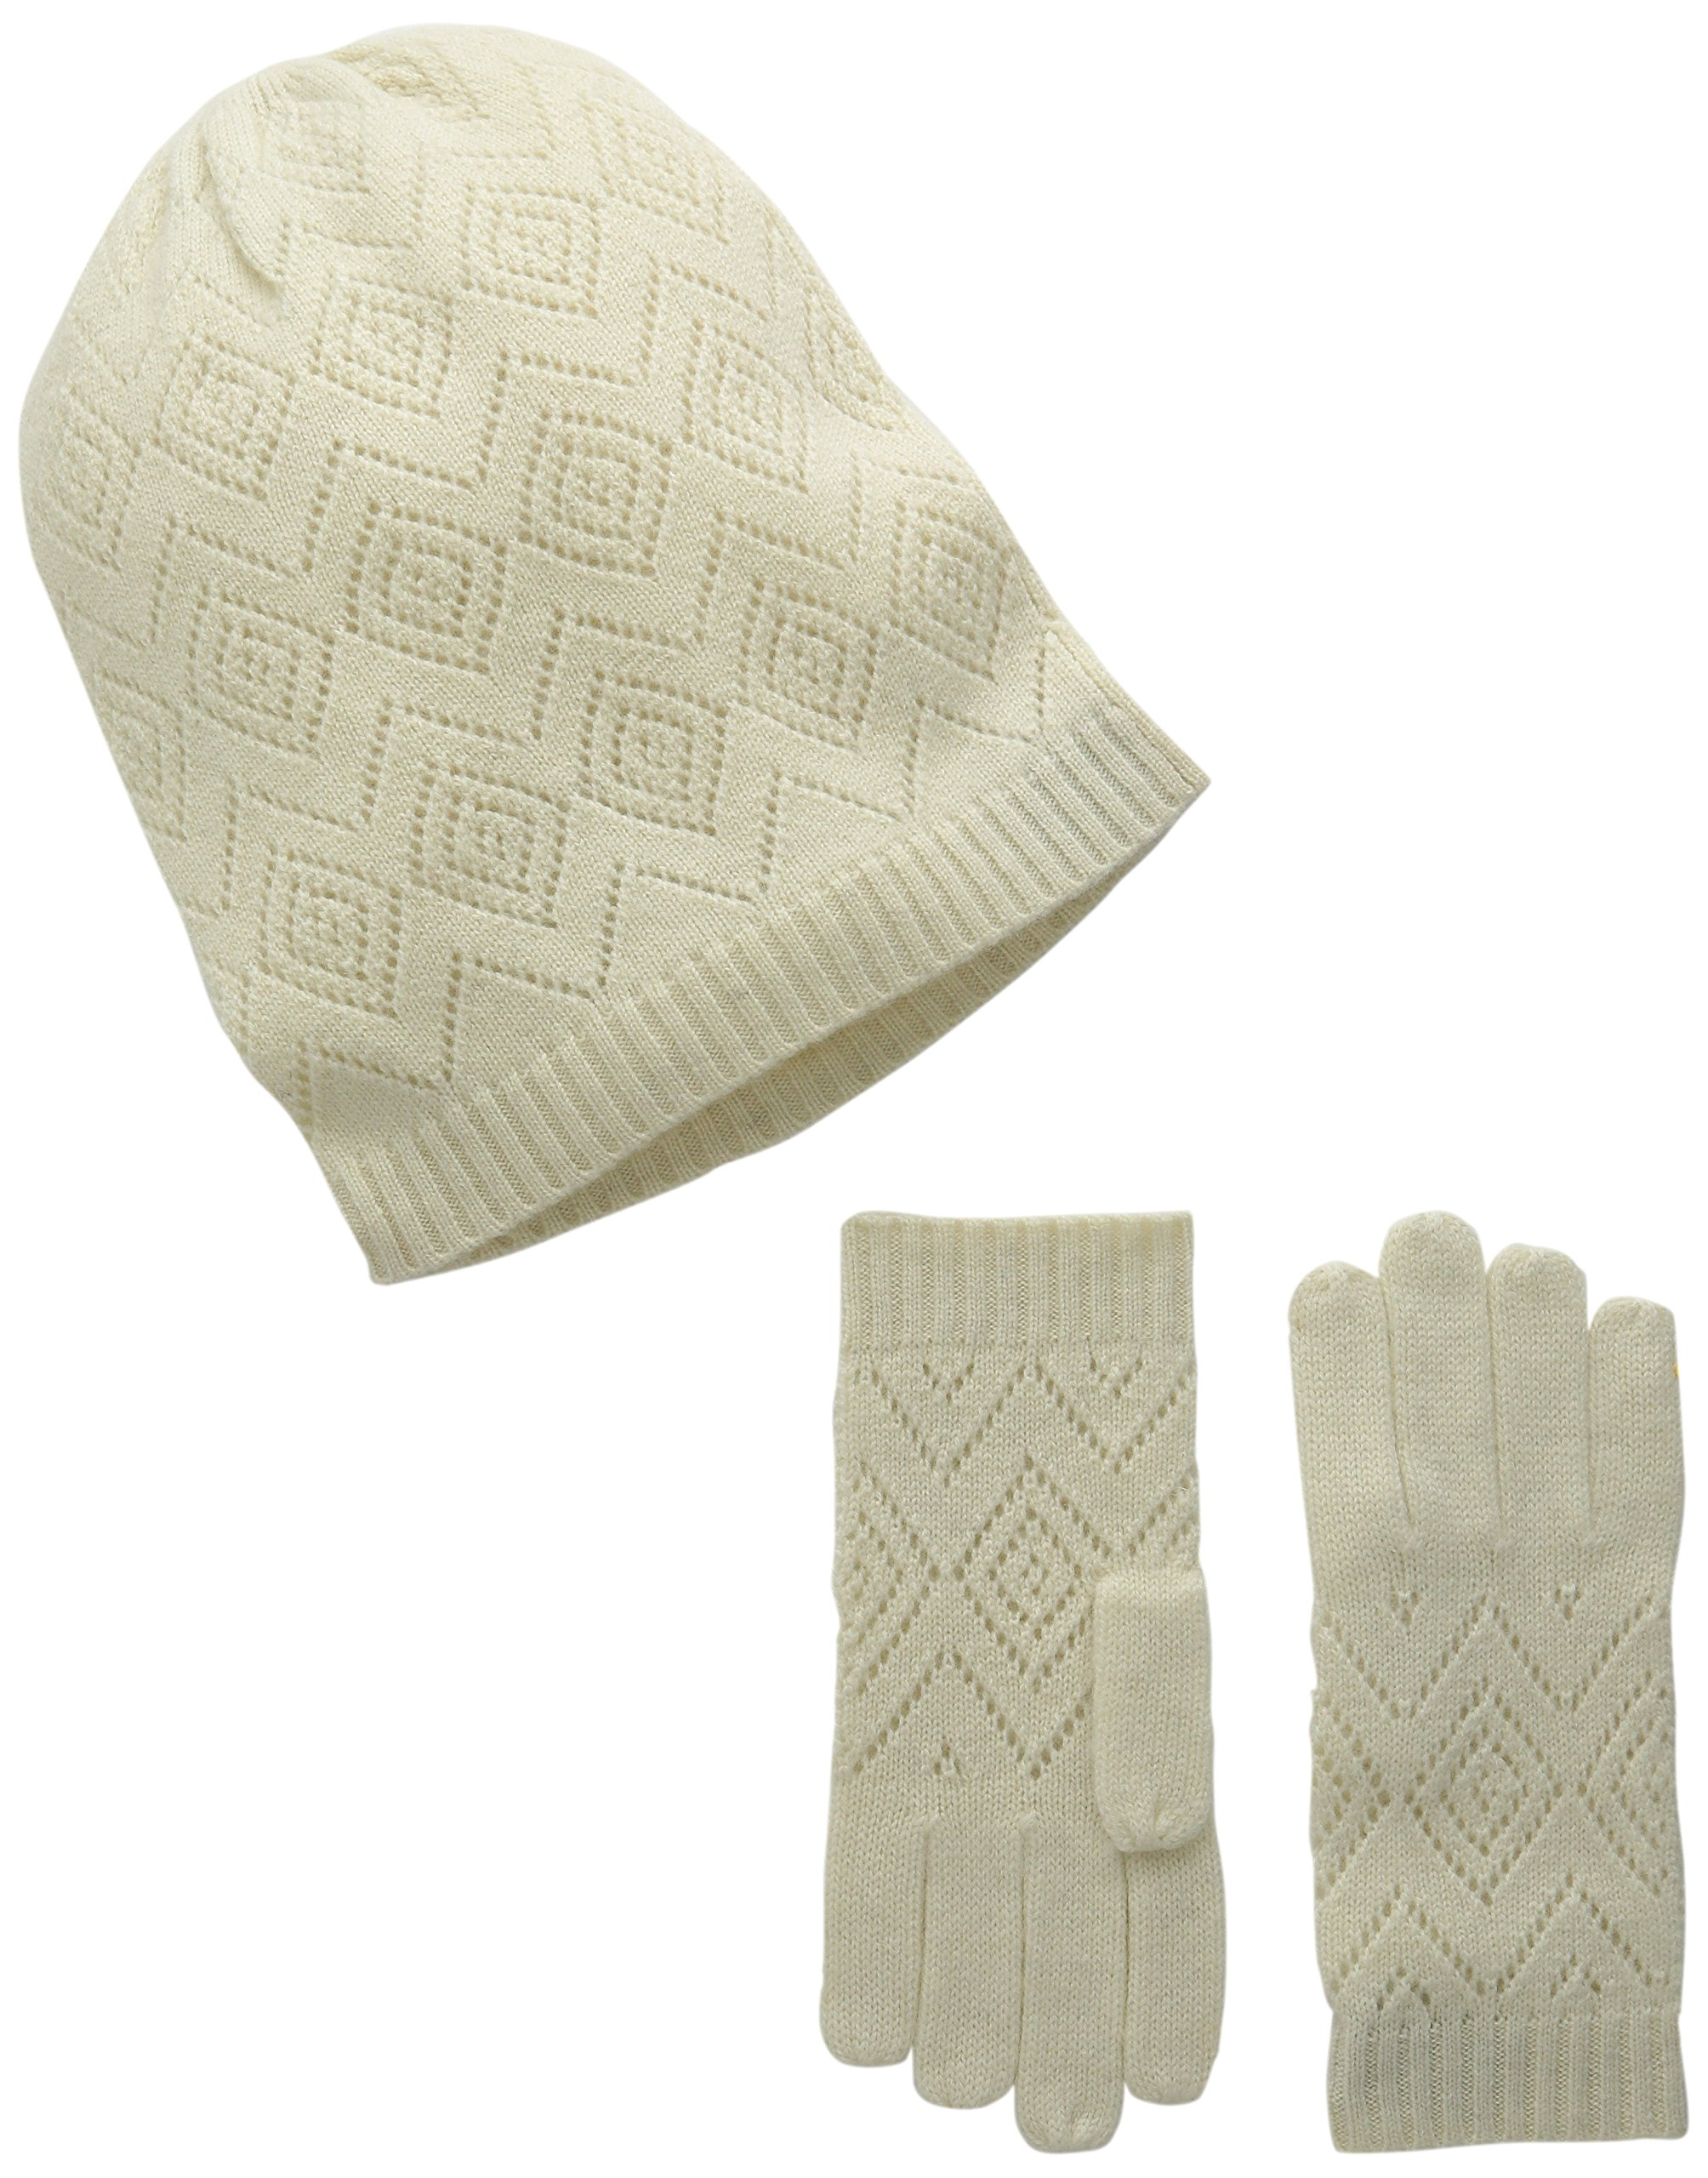 La Fiorentina Women's Cashmere Knit Pointelle Hat and Glove 2 Piece Set, Ivory, One Size